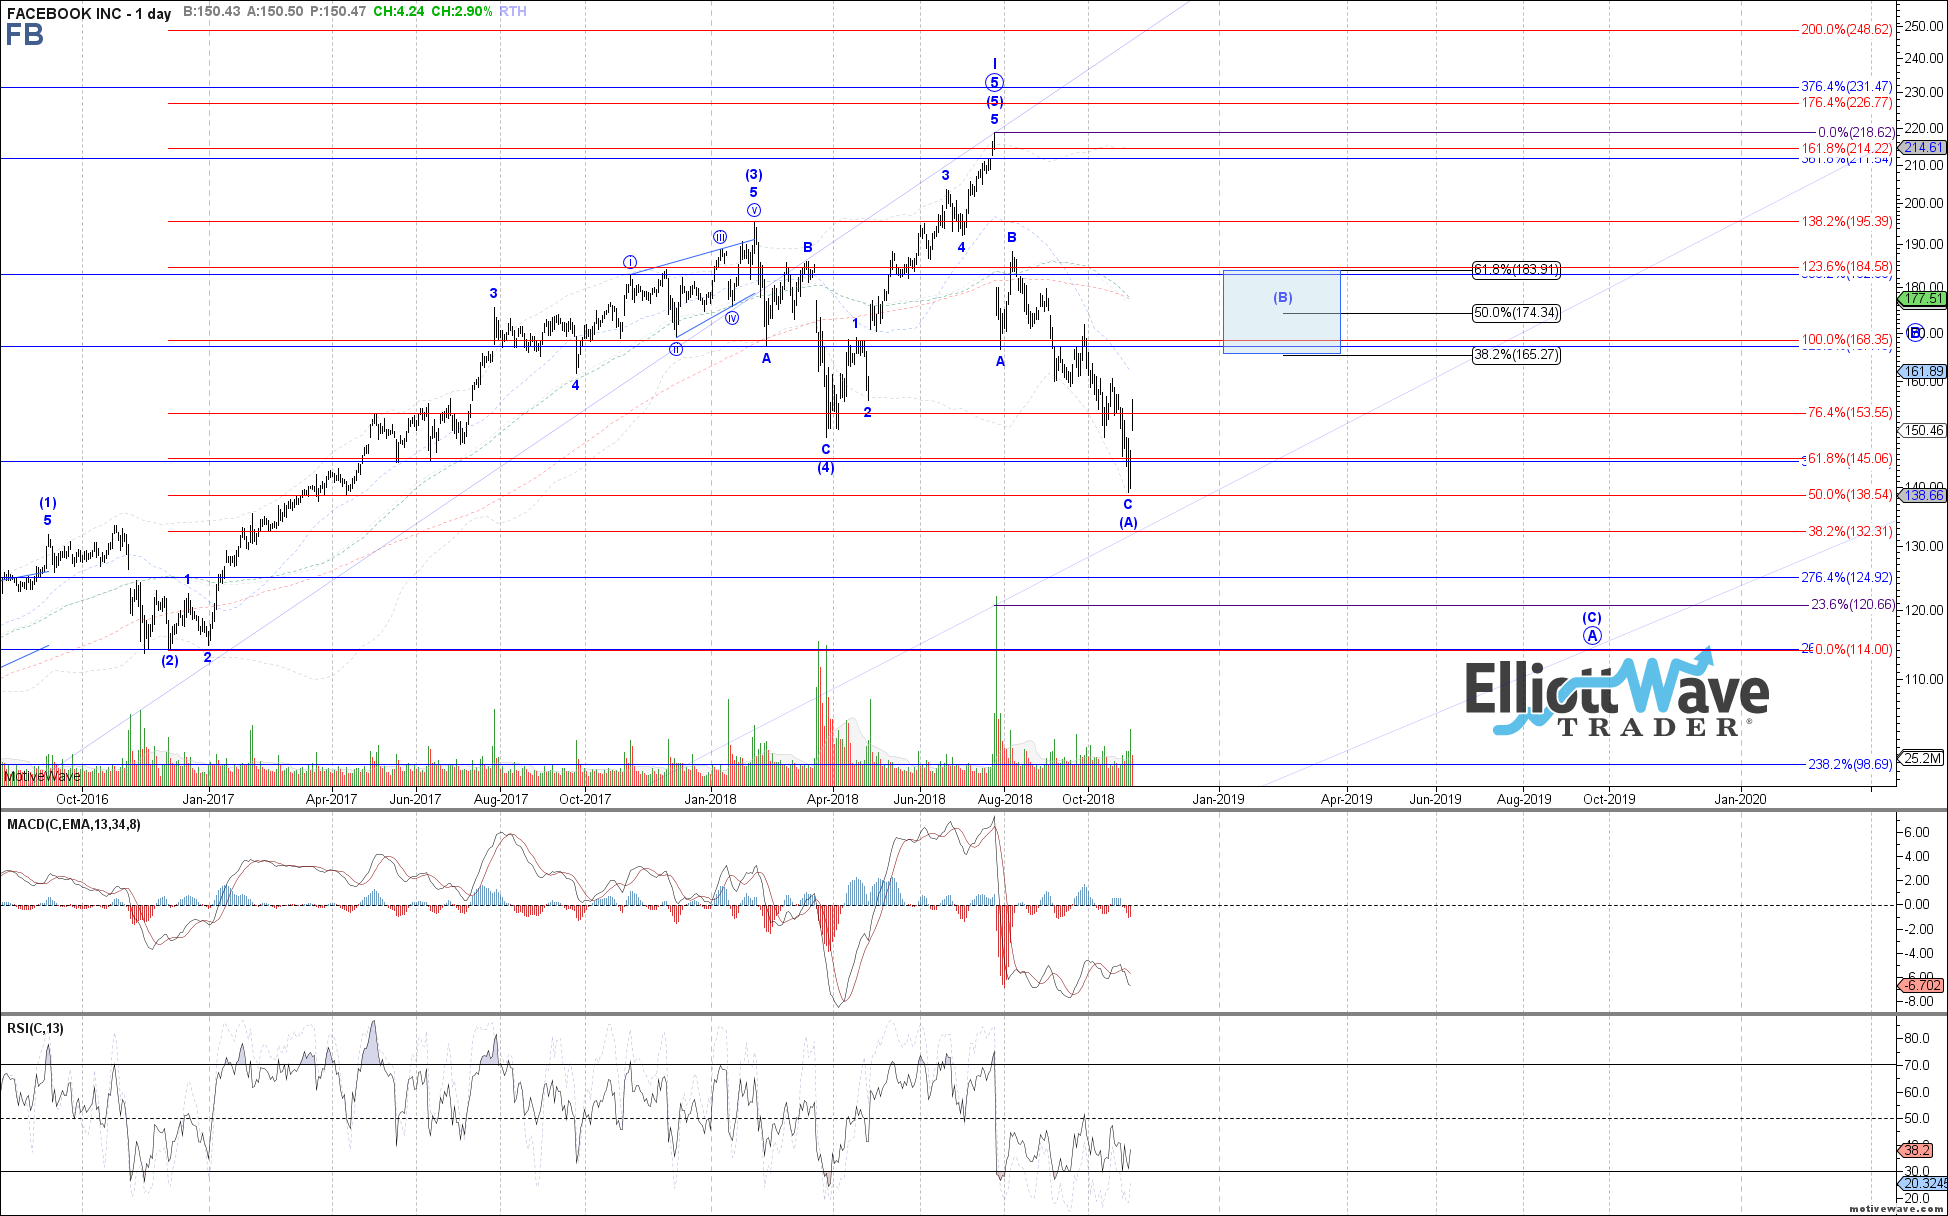 FB - Primary Analysis - Oct-31 0836 AM (1 day)